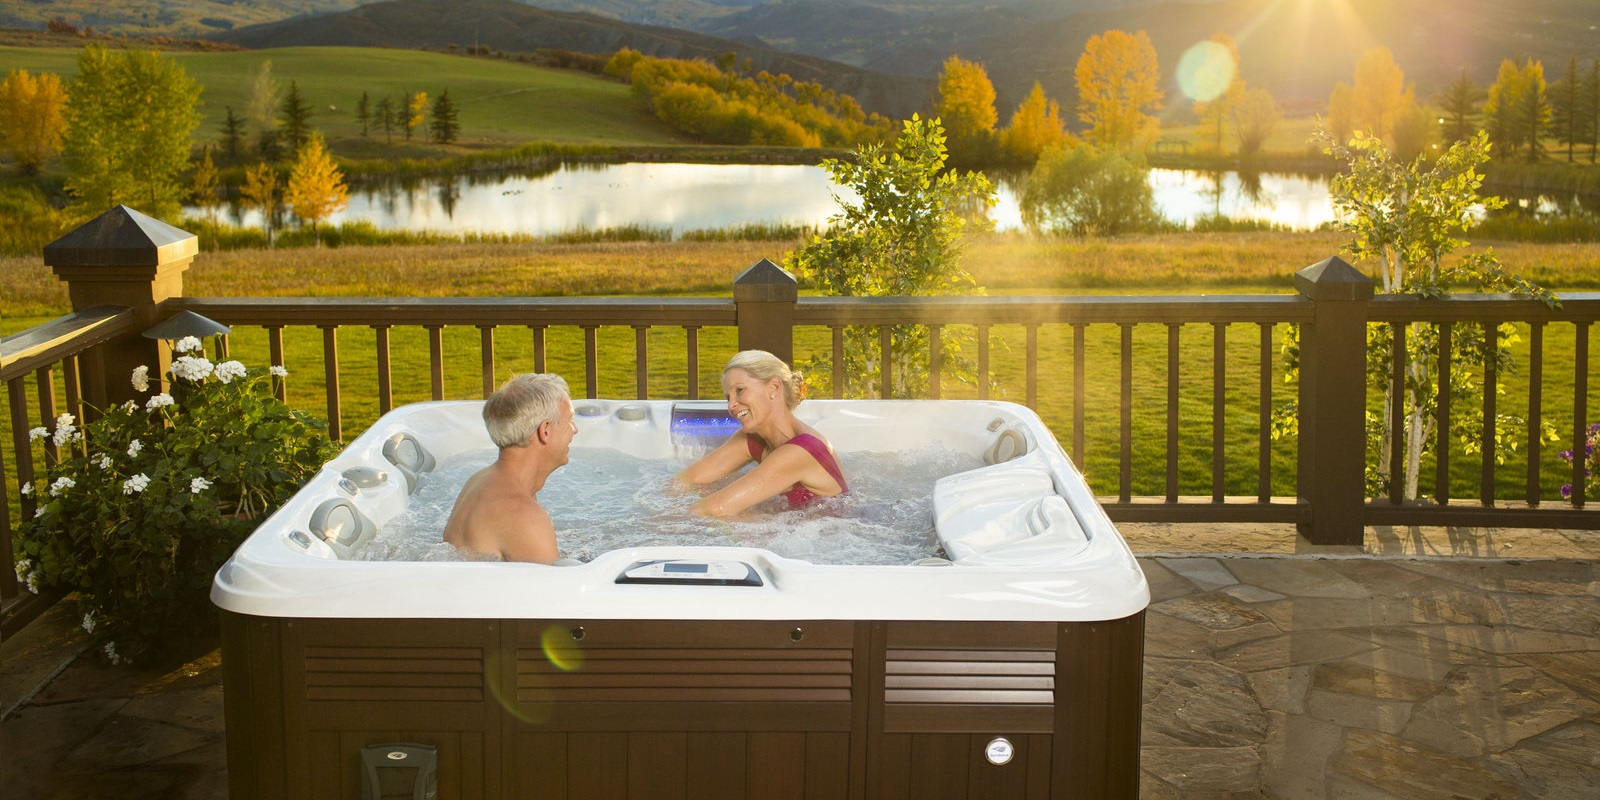 cleaning outdoor vegas tips from of jacuzzi tub jacuzziboise galaxy maintenance hot las